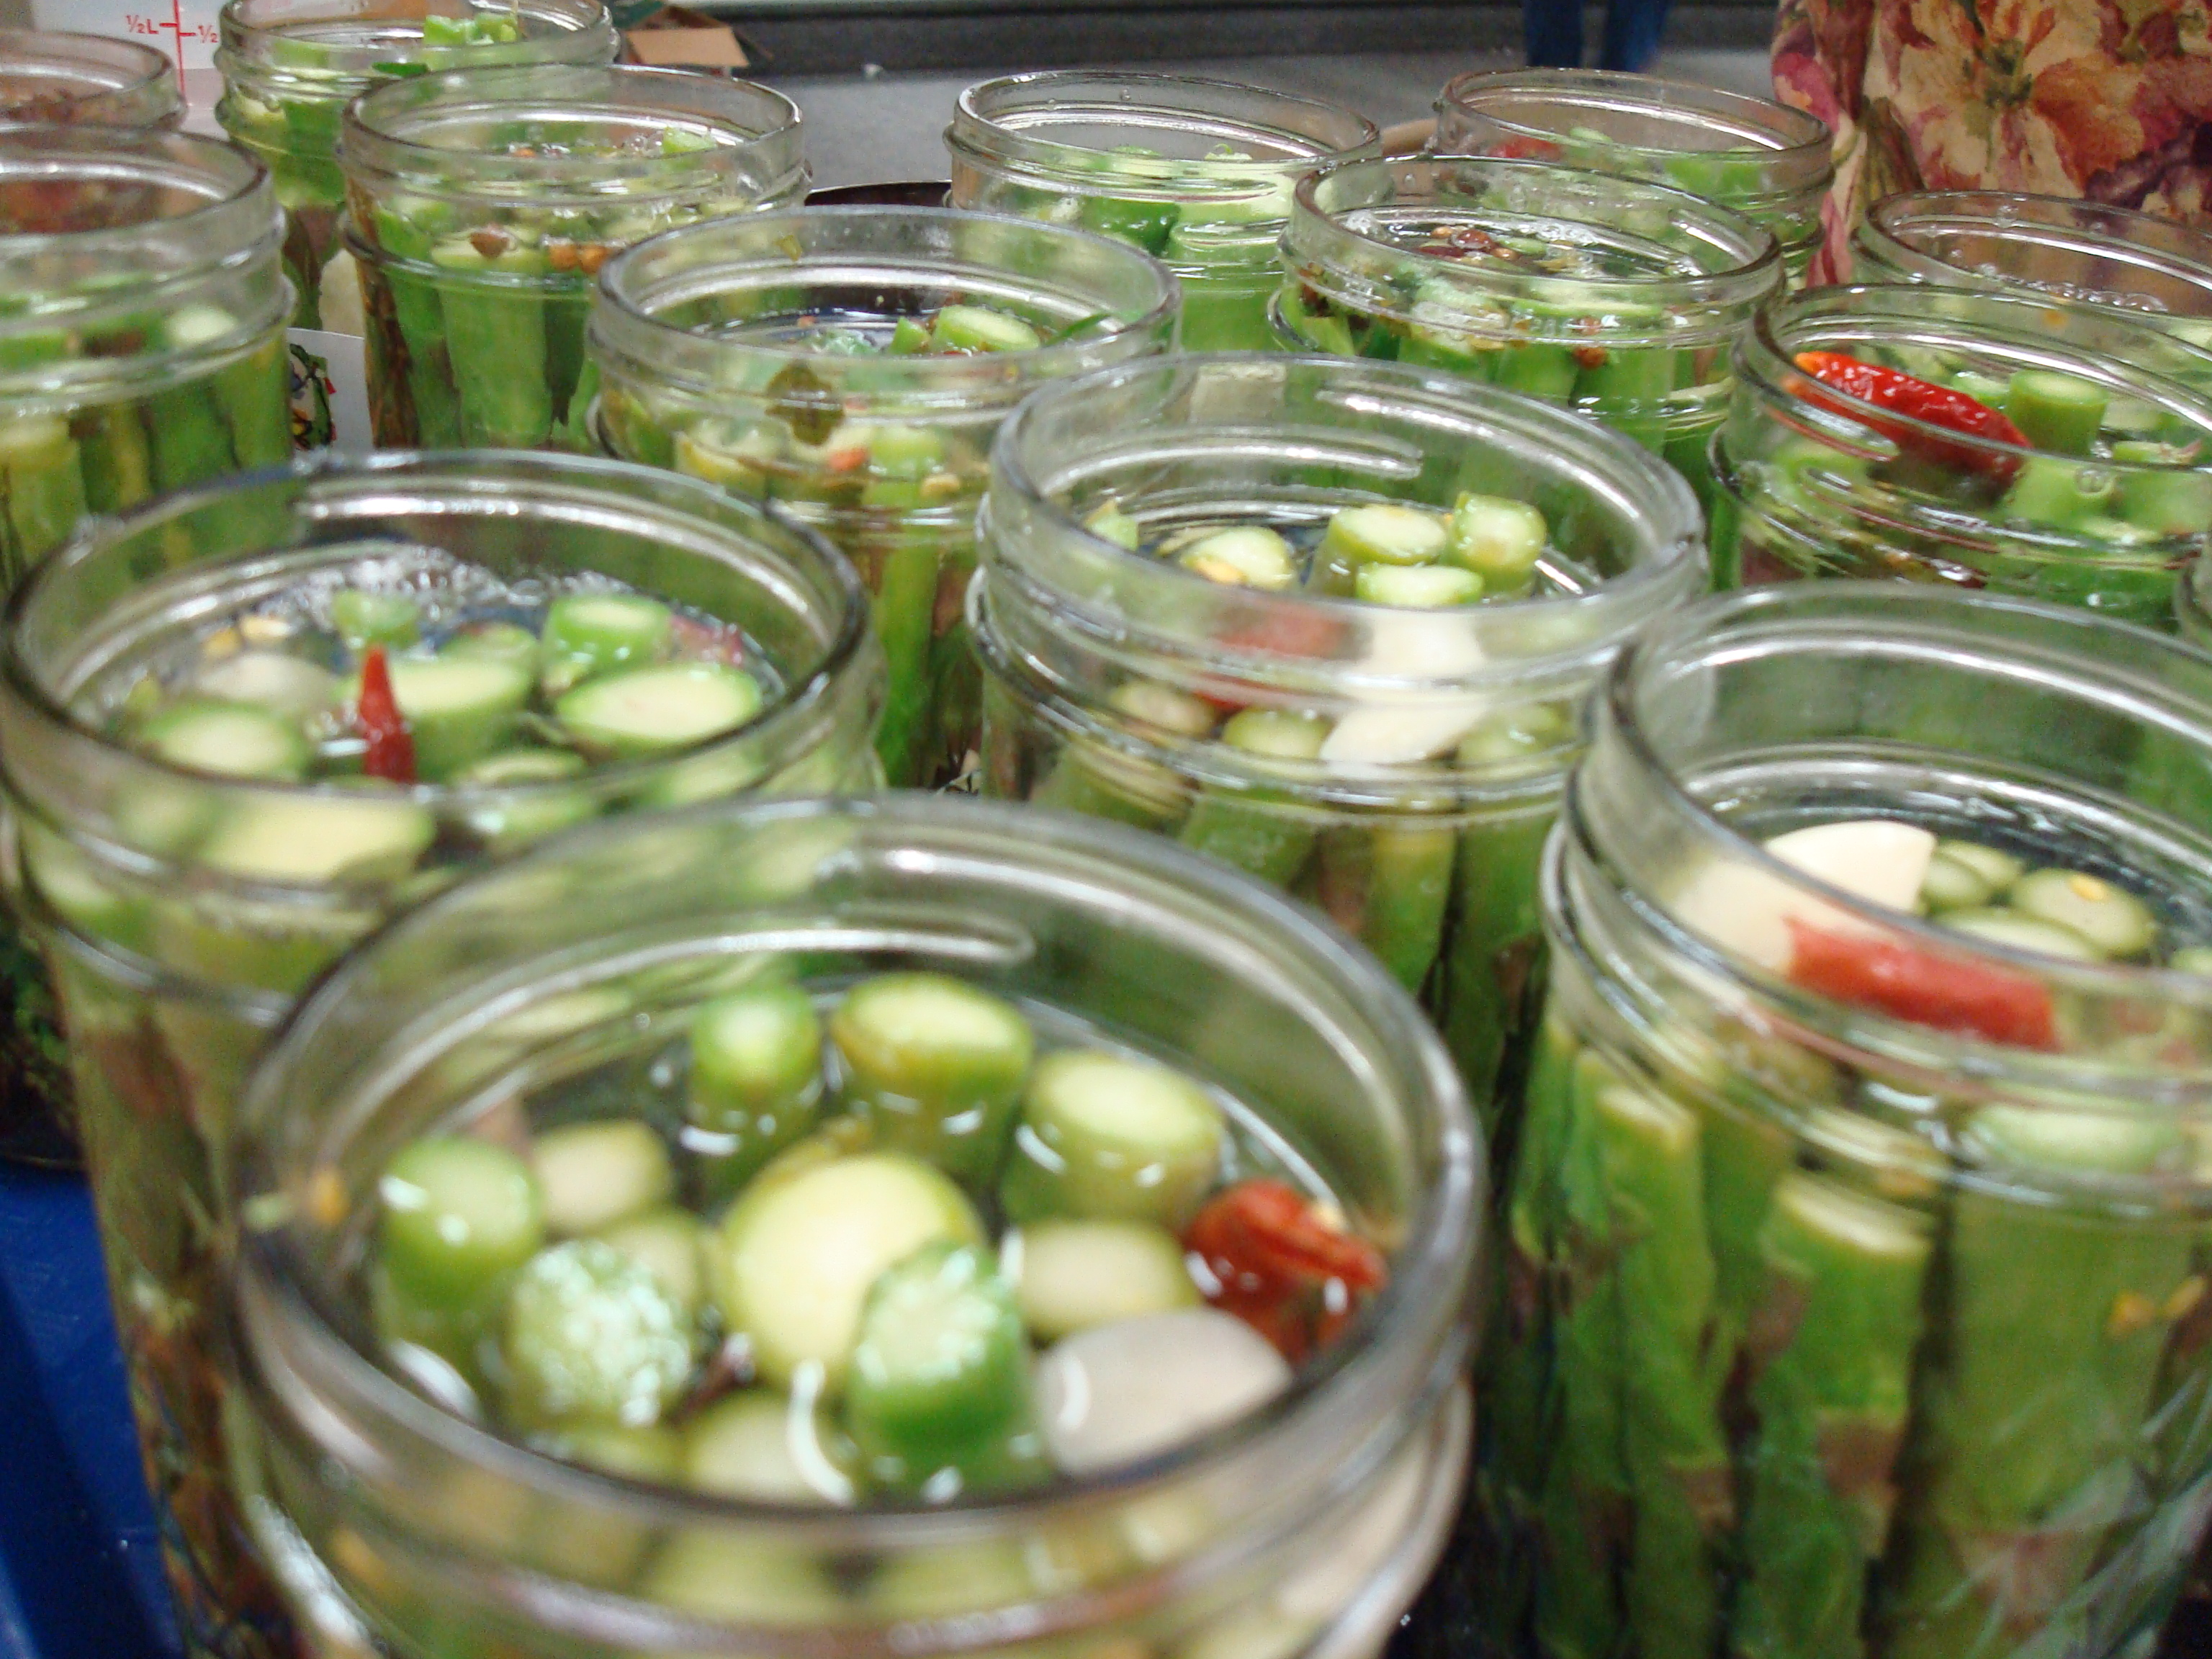 Pickles we low-pasteurize water-bath canned in class